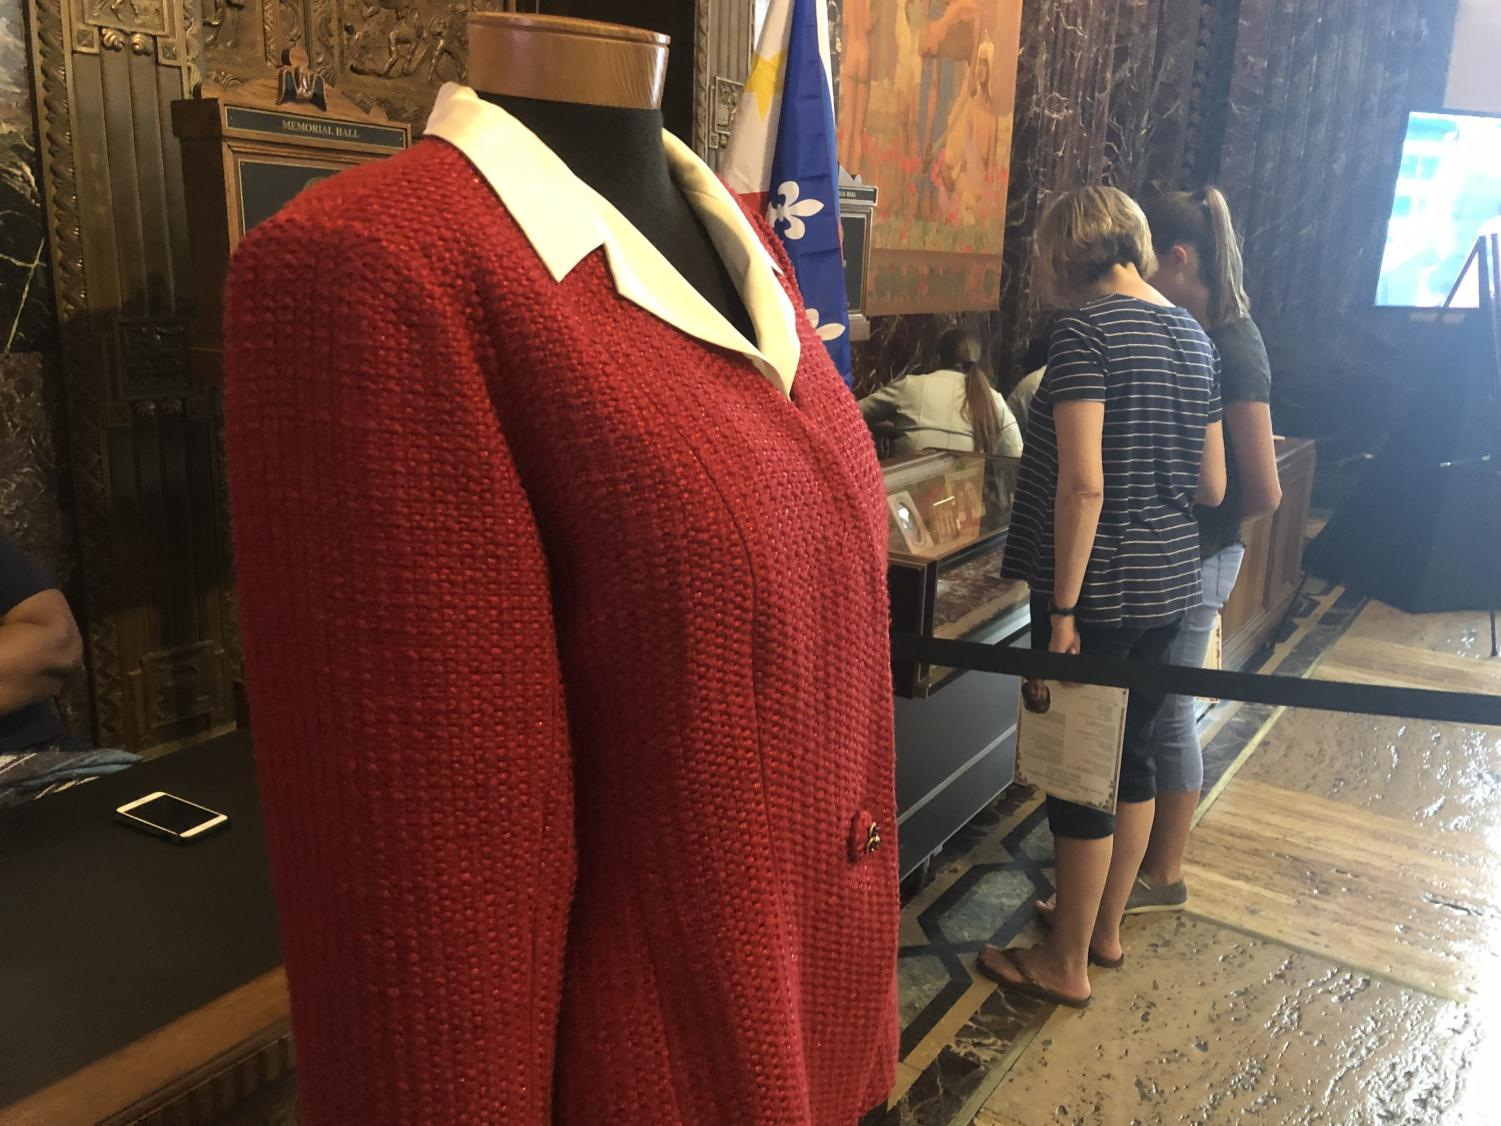 Kathleen Blanco's suit from her inauguration as Louisiana's first female governor was on display at the State Capitol on Aug. 22, 2019. Other items from her political career were also showcased to the public. Photo credit: Andres Fuentes